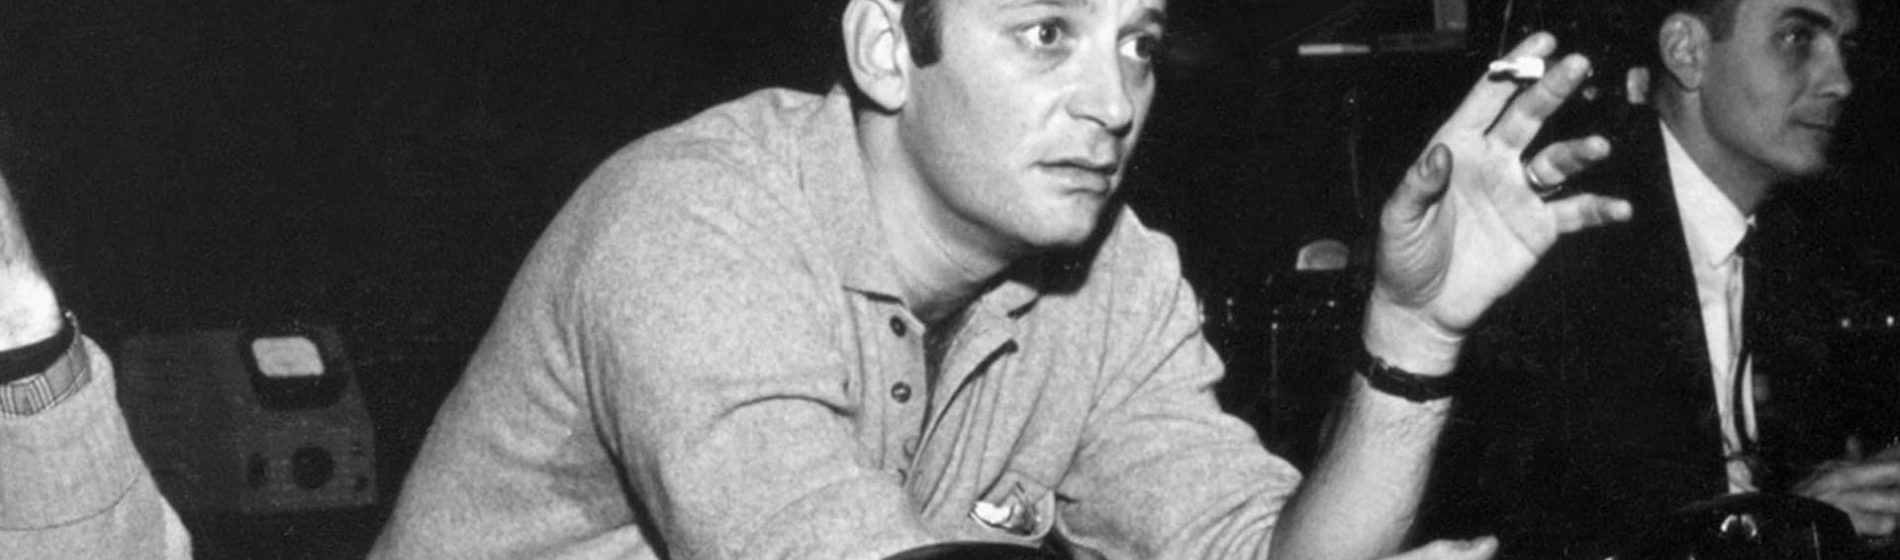 BANG!-The Bert Berns Story